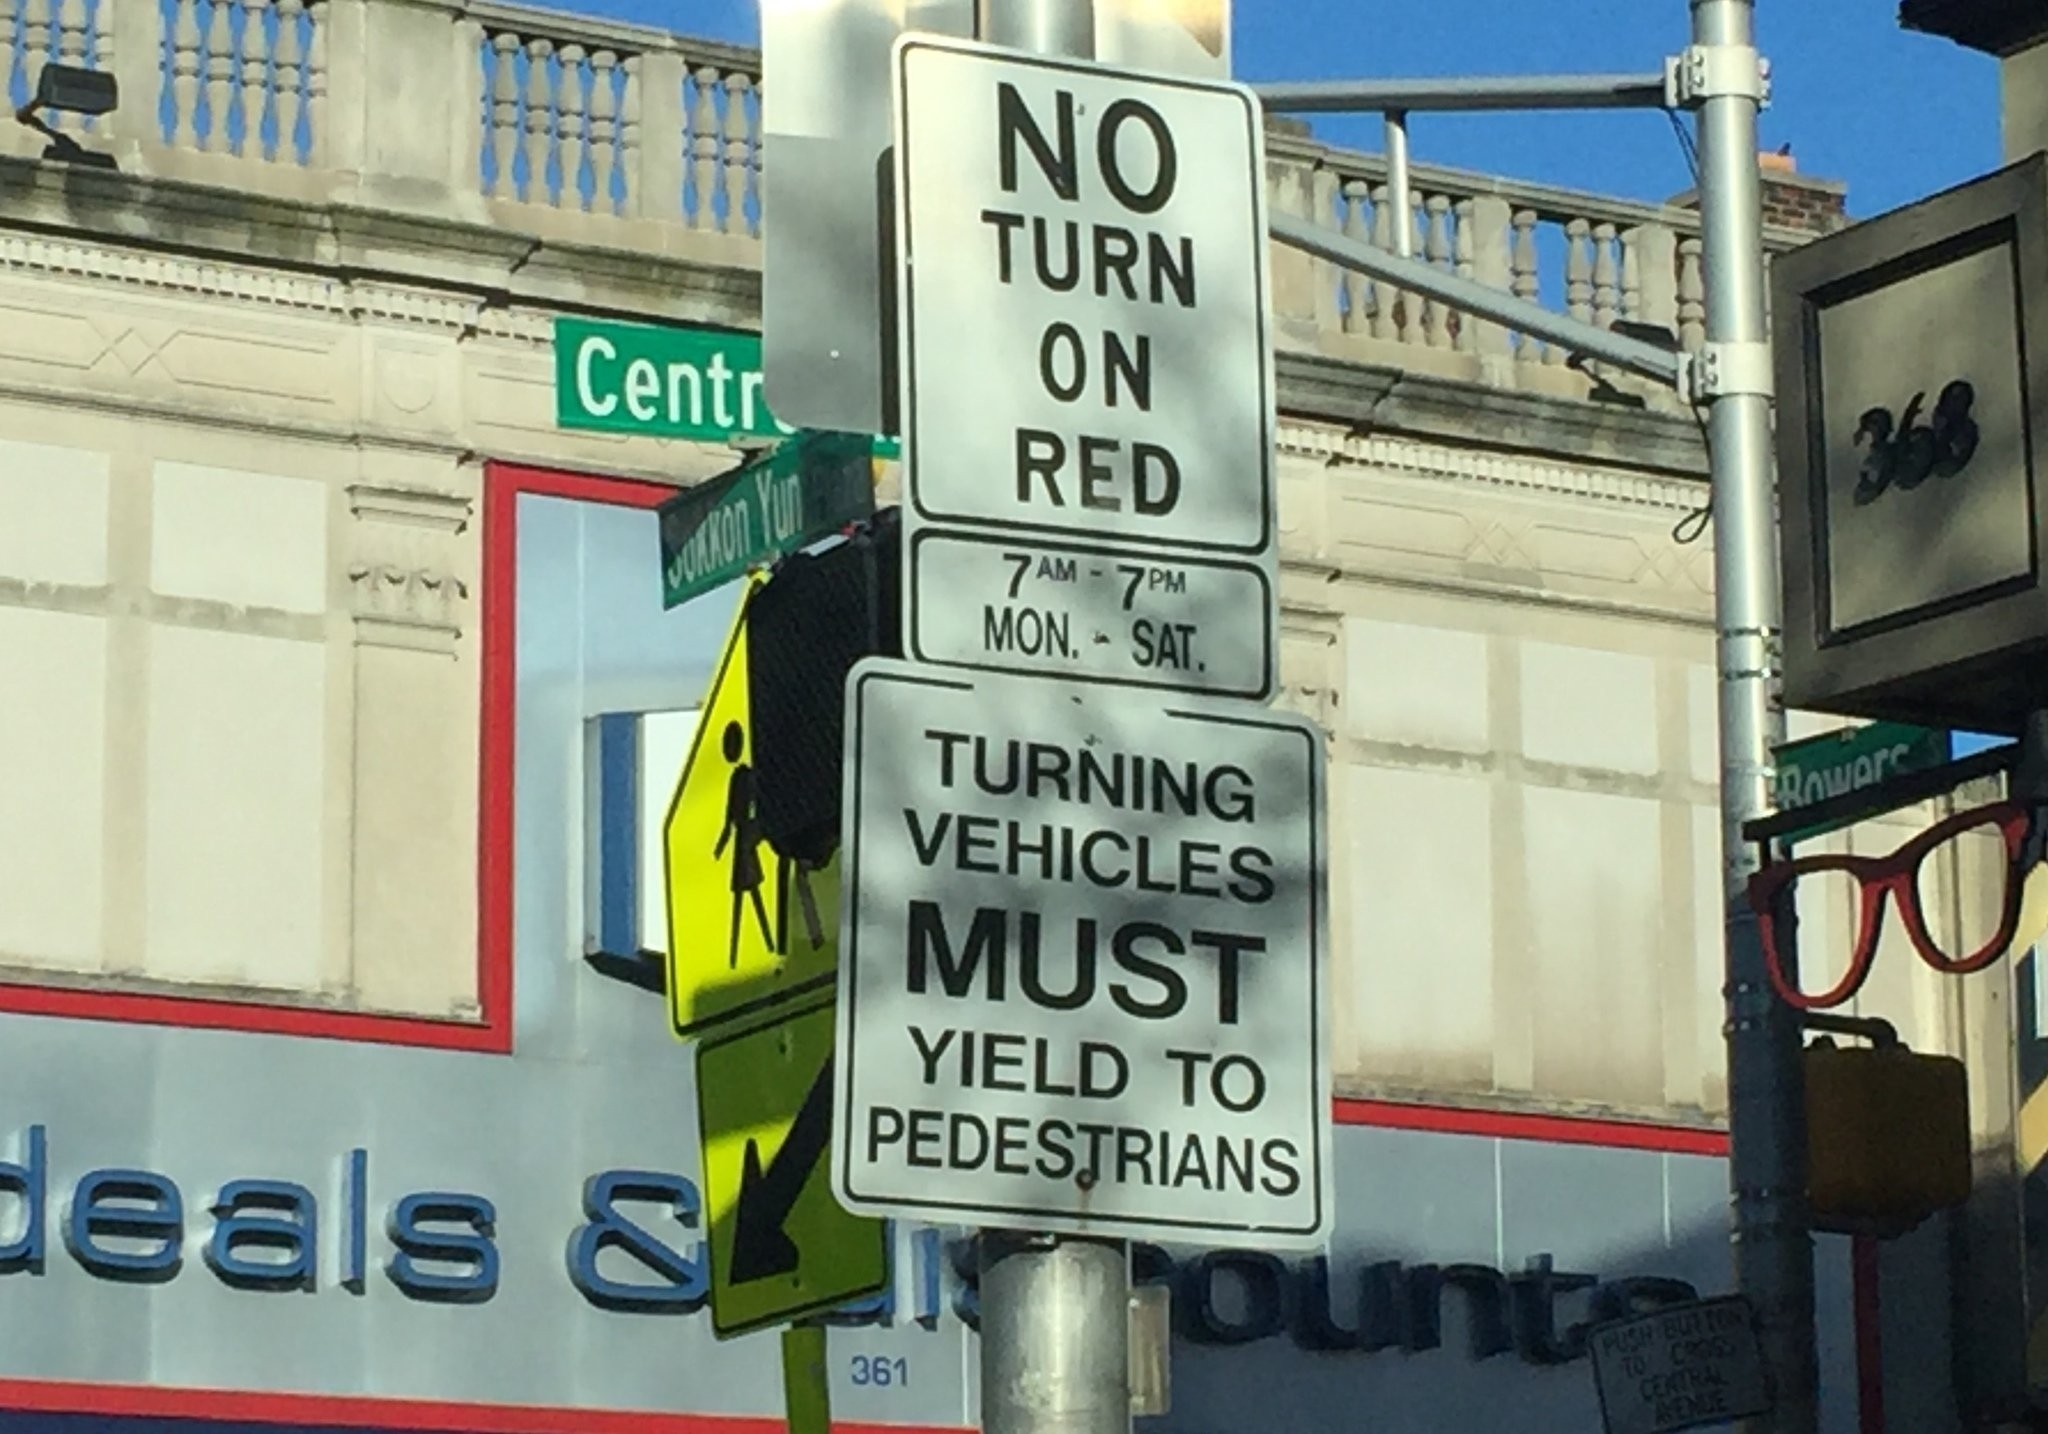 What S The Difference Between No Turn On Red And Stop Here On Red Signs Nj Com